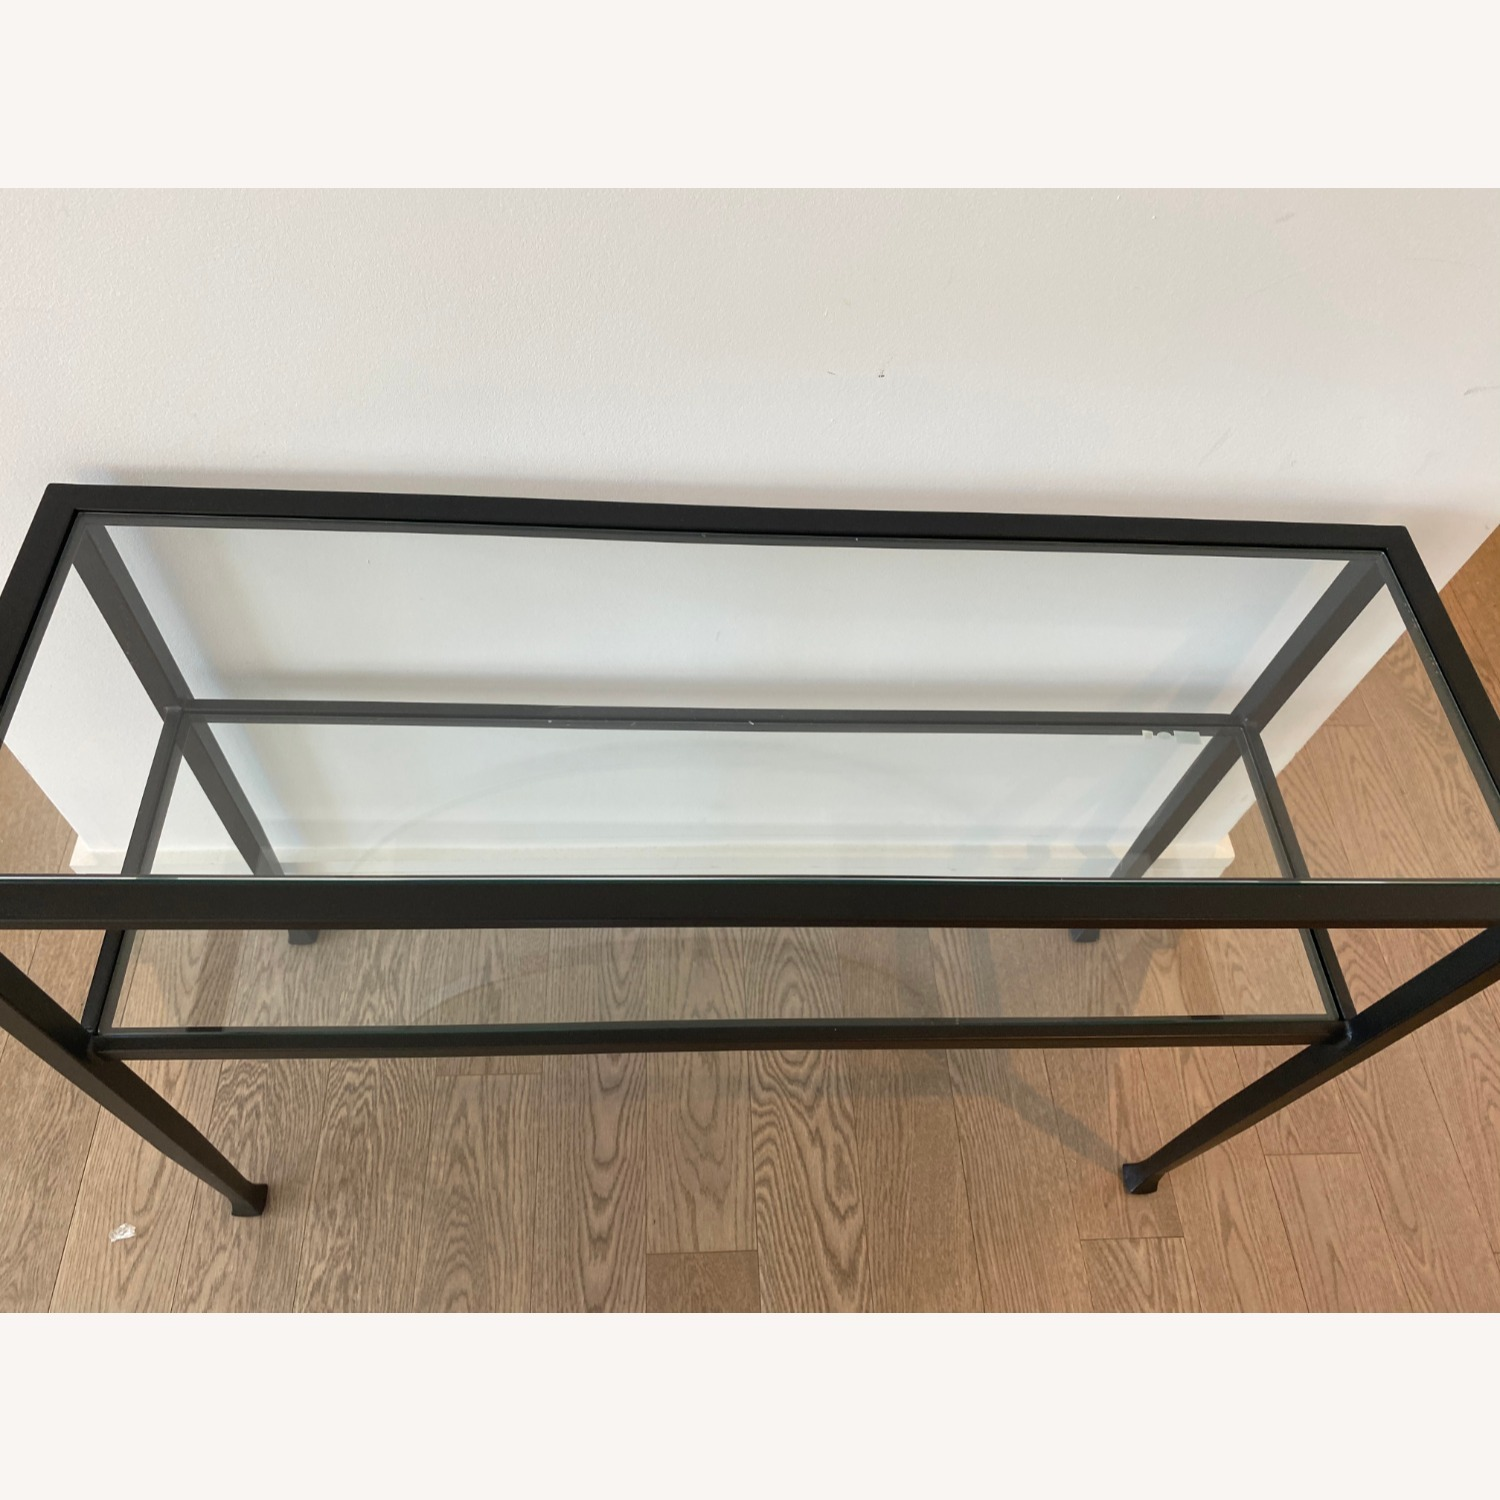 Pottery Barn Glass Console Table - image-2